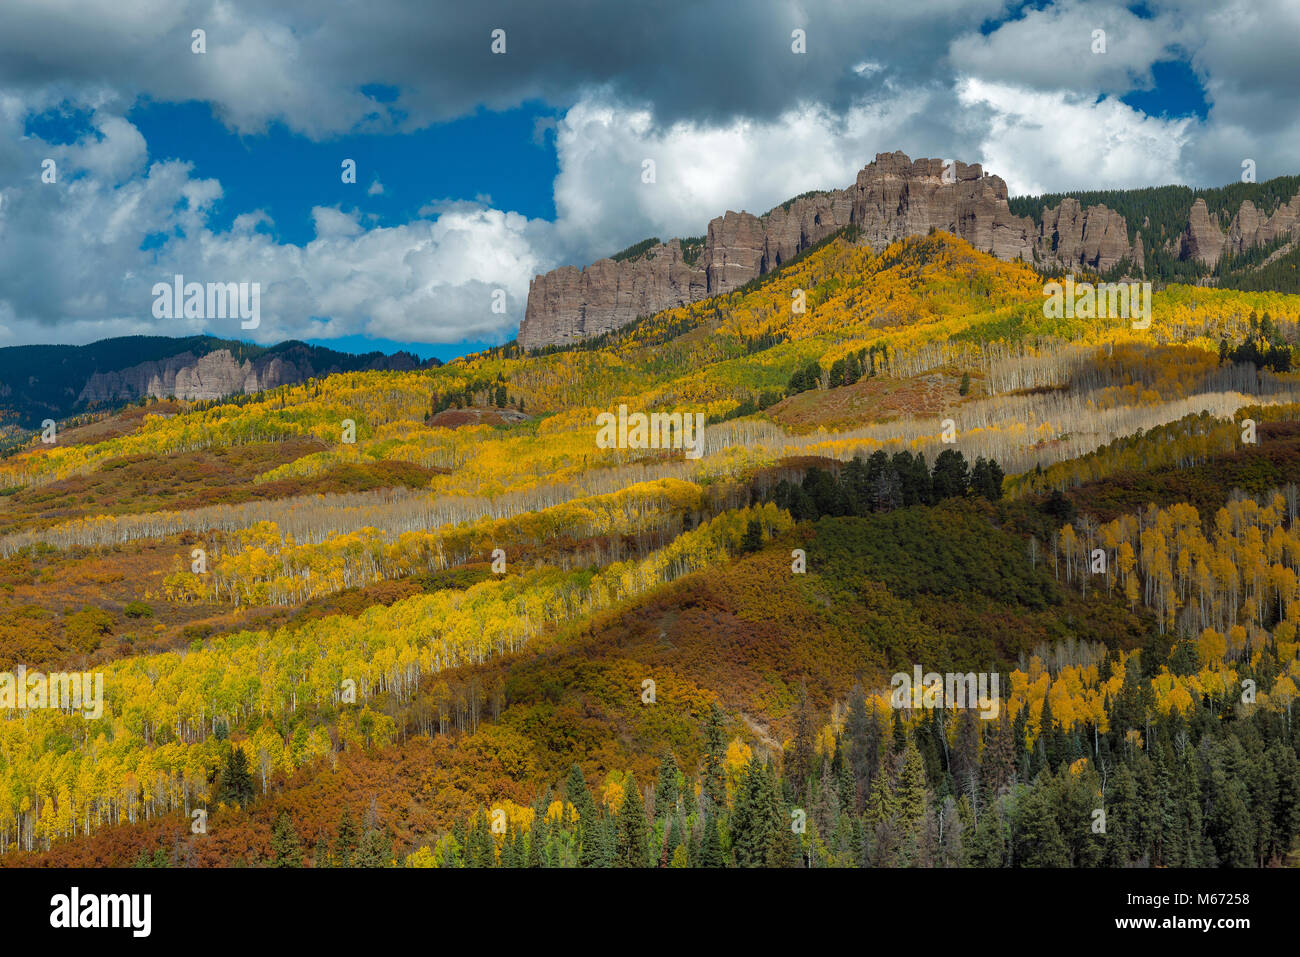 Aspens, Populus Tremula, Cimarron Ridge, Uncompahgre National Forest, Colorado - Stock Image